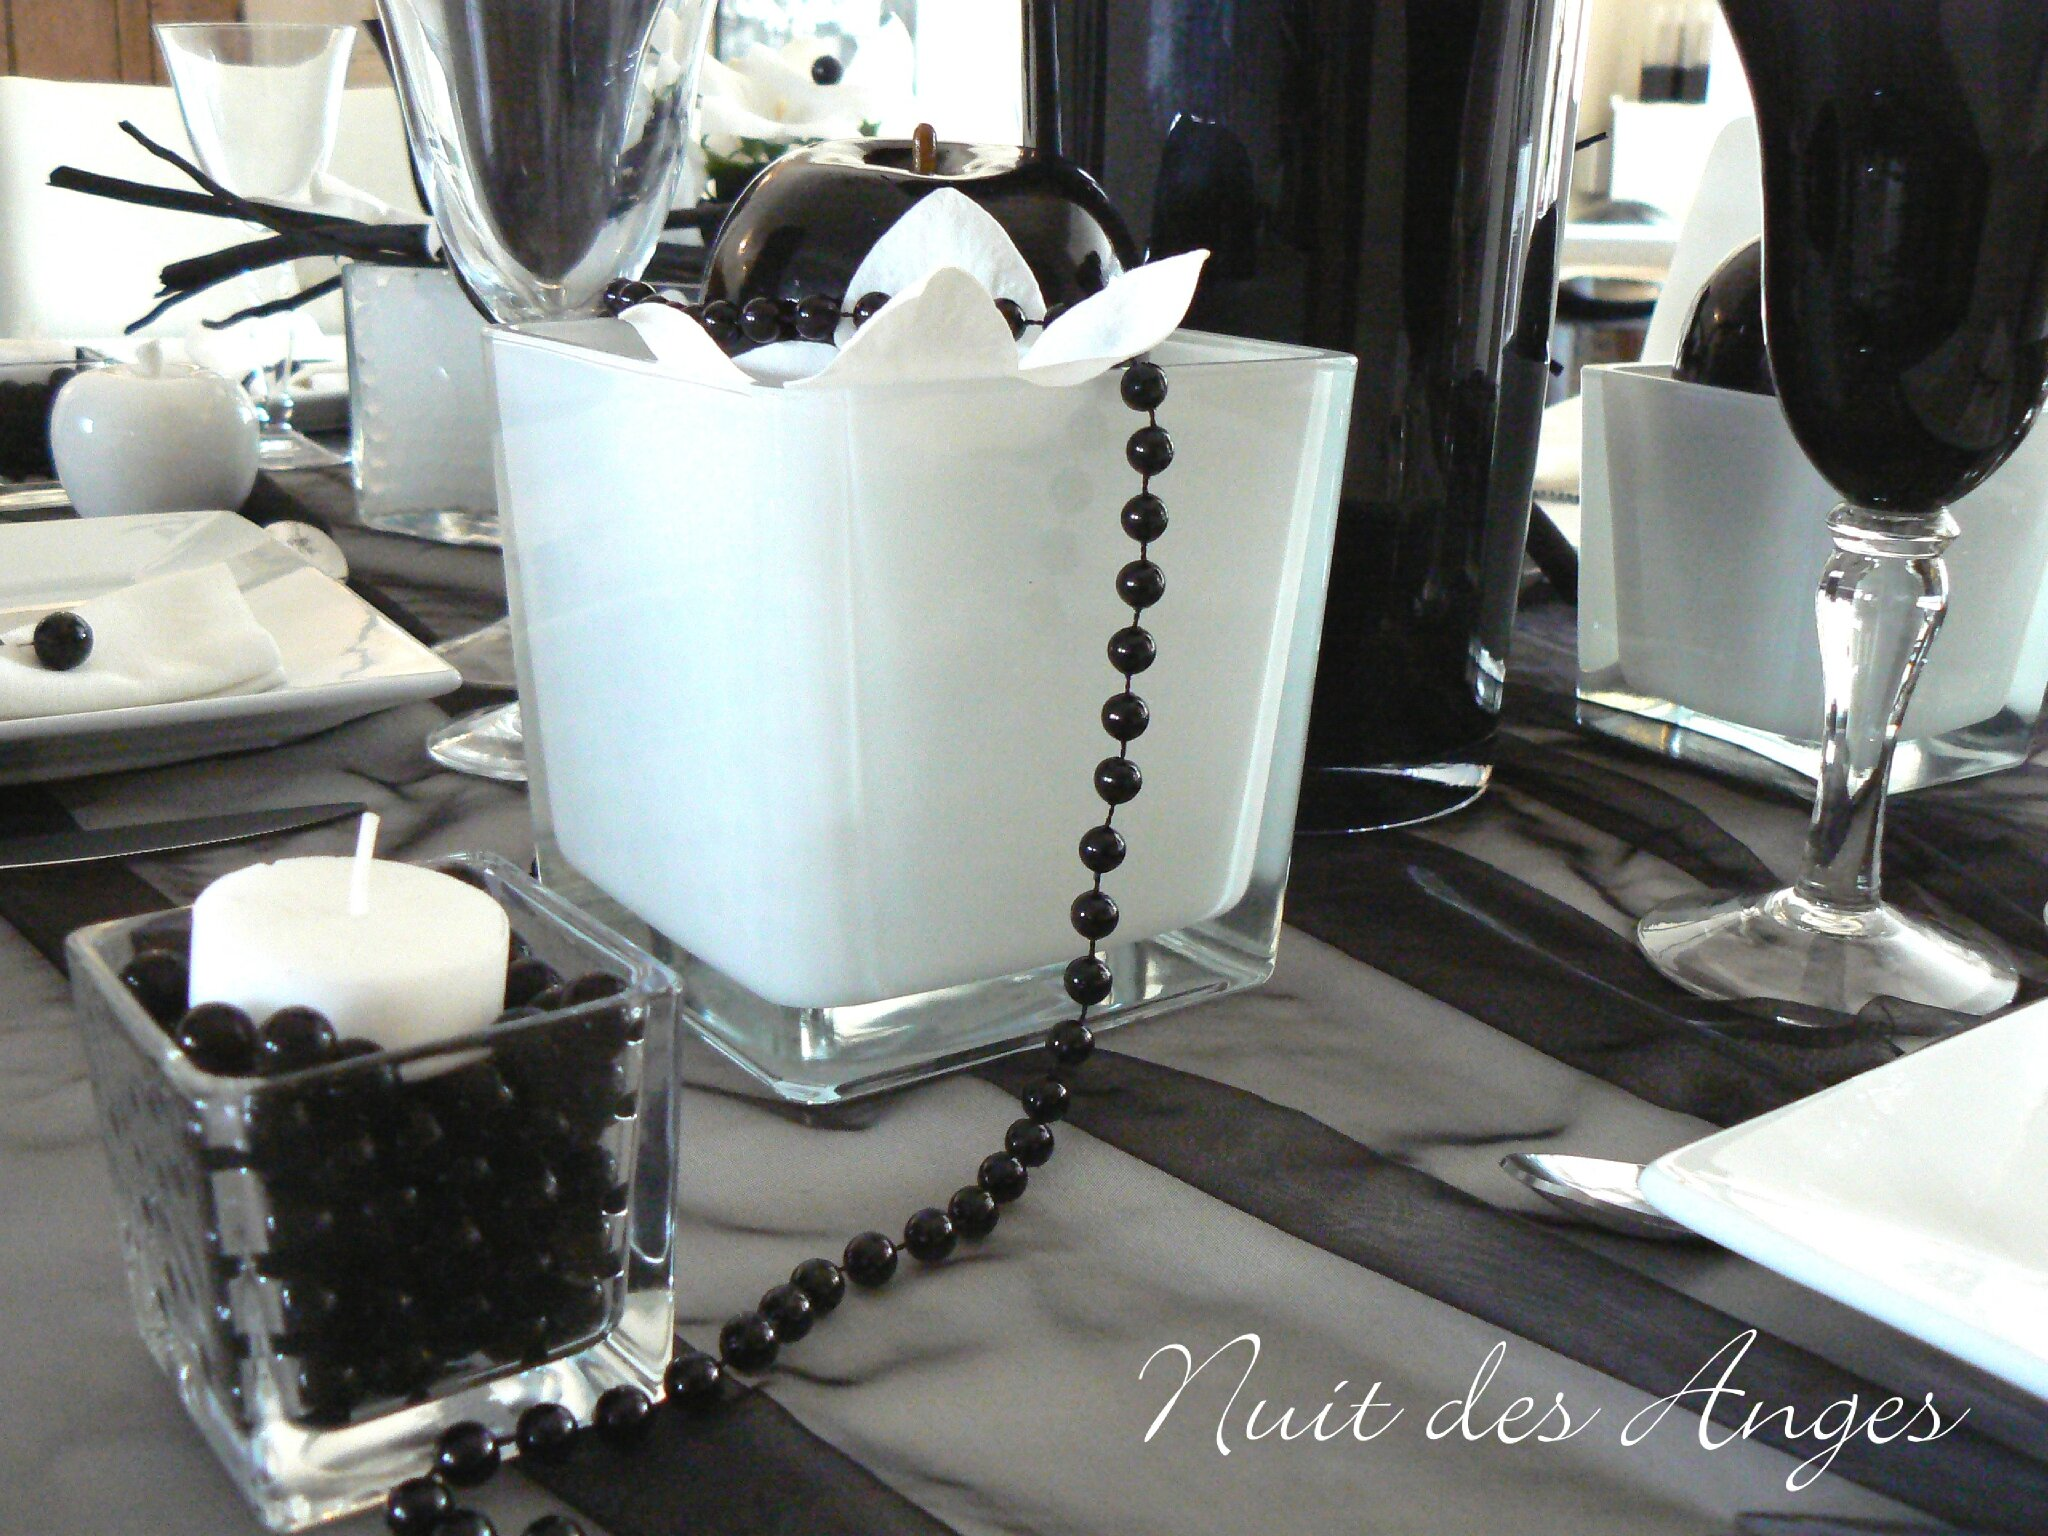 d coration de table noire et blanche nuit des anges. Black Bedroom Furniture Sets. Home Design Ideas